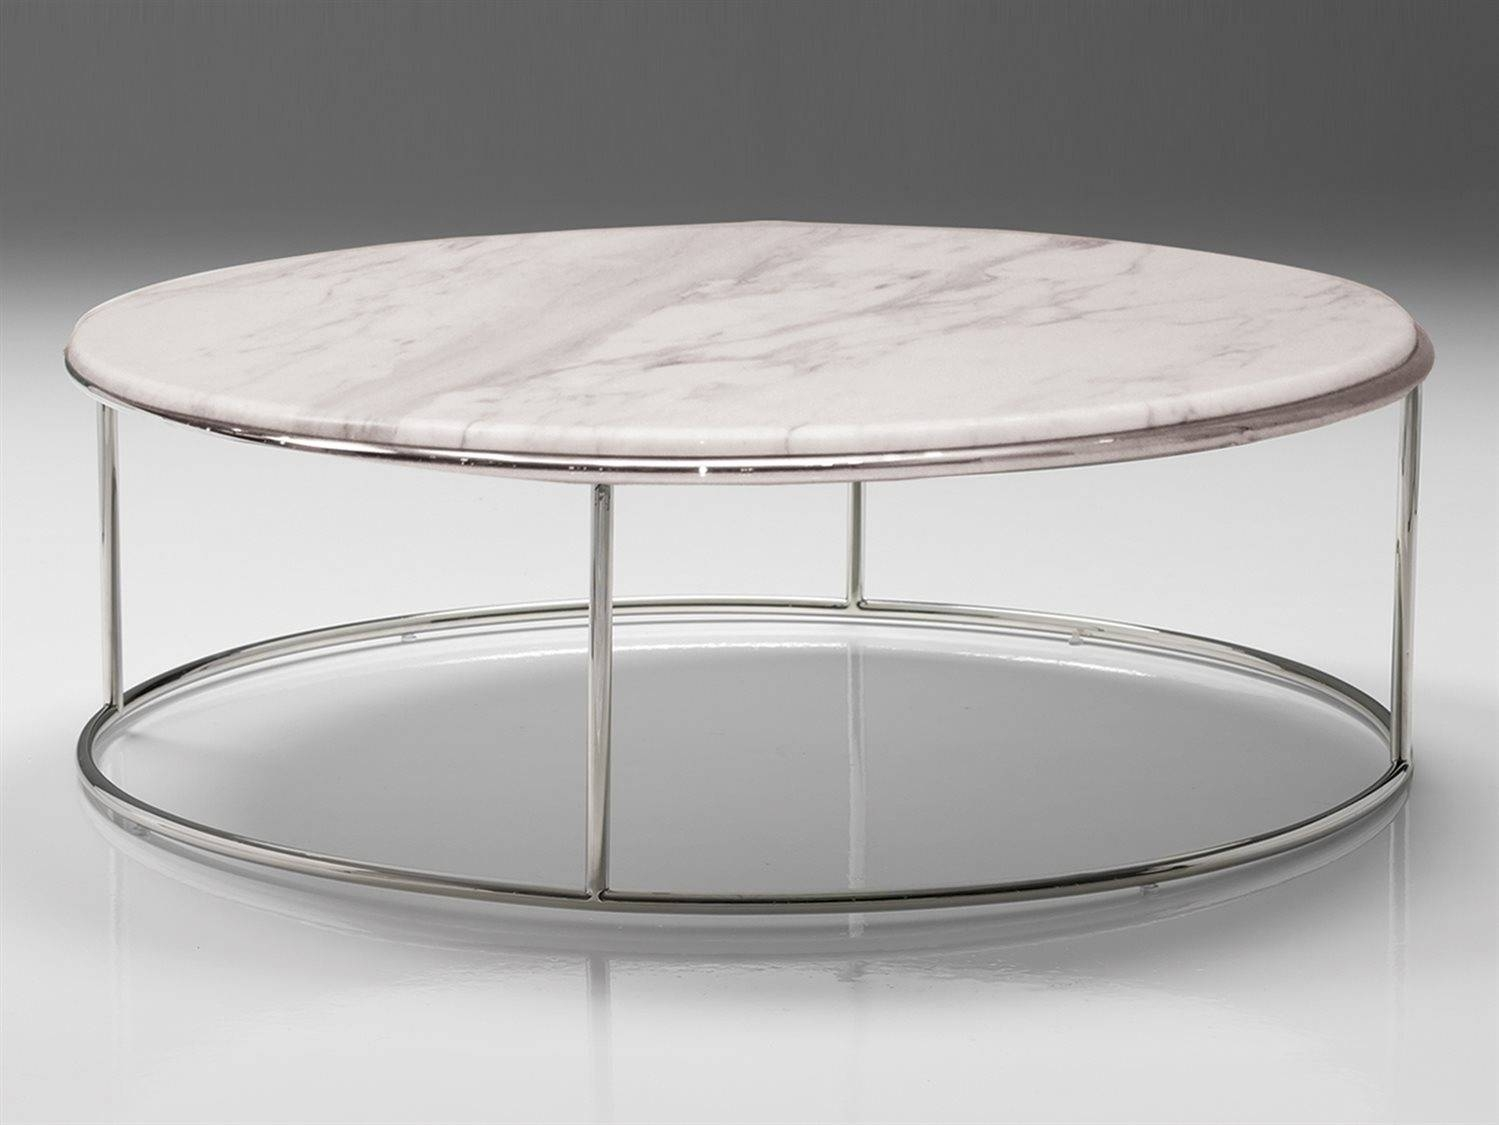 Decor: Inspiring Marble Coffee Table For Living Room Furniture for White And Chrome Coffee Tables (Image 10 of 30)